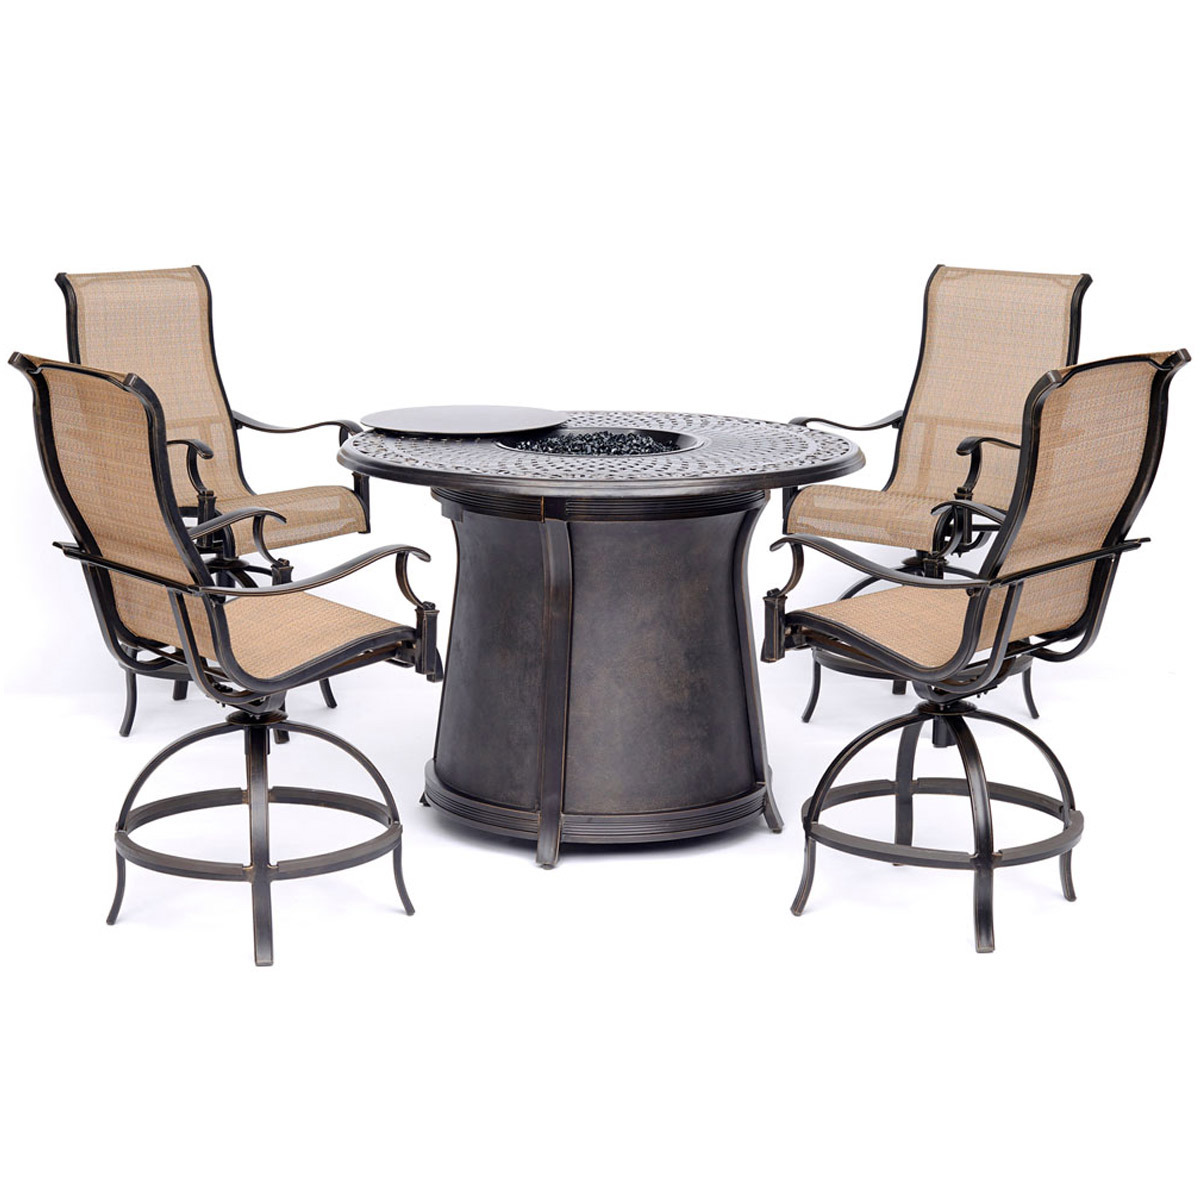 Manor 5 Piece High Dining Set In Tan With 4 Swivel Chairs And A 40 000 Btu Cast Top Fire Pit Table